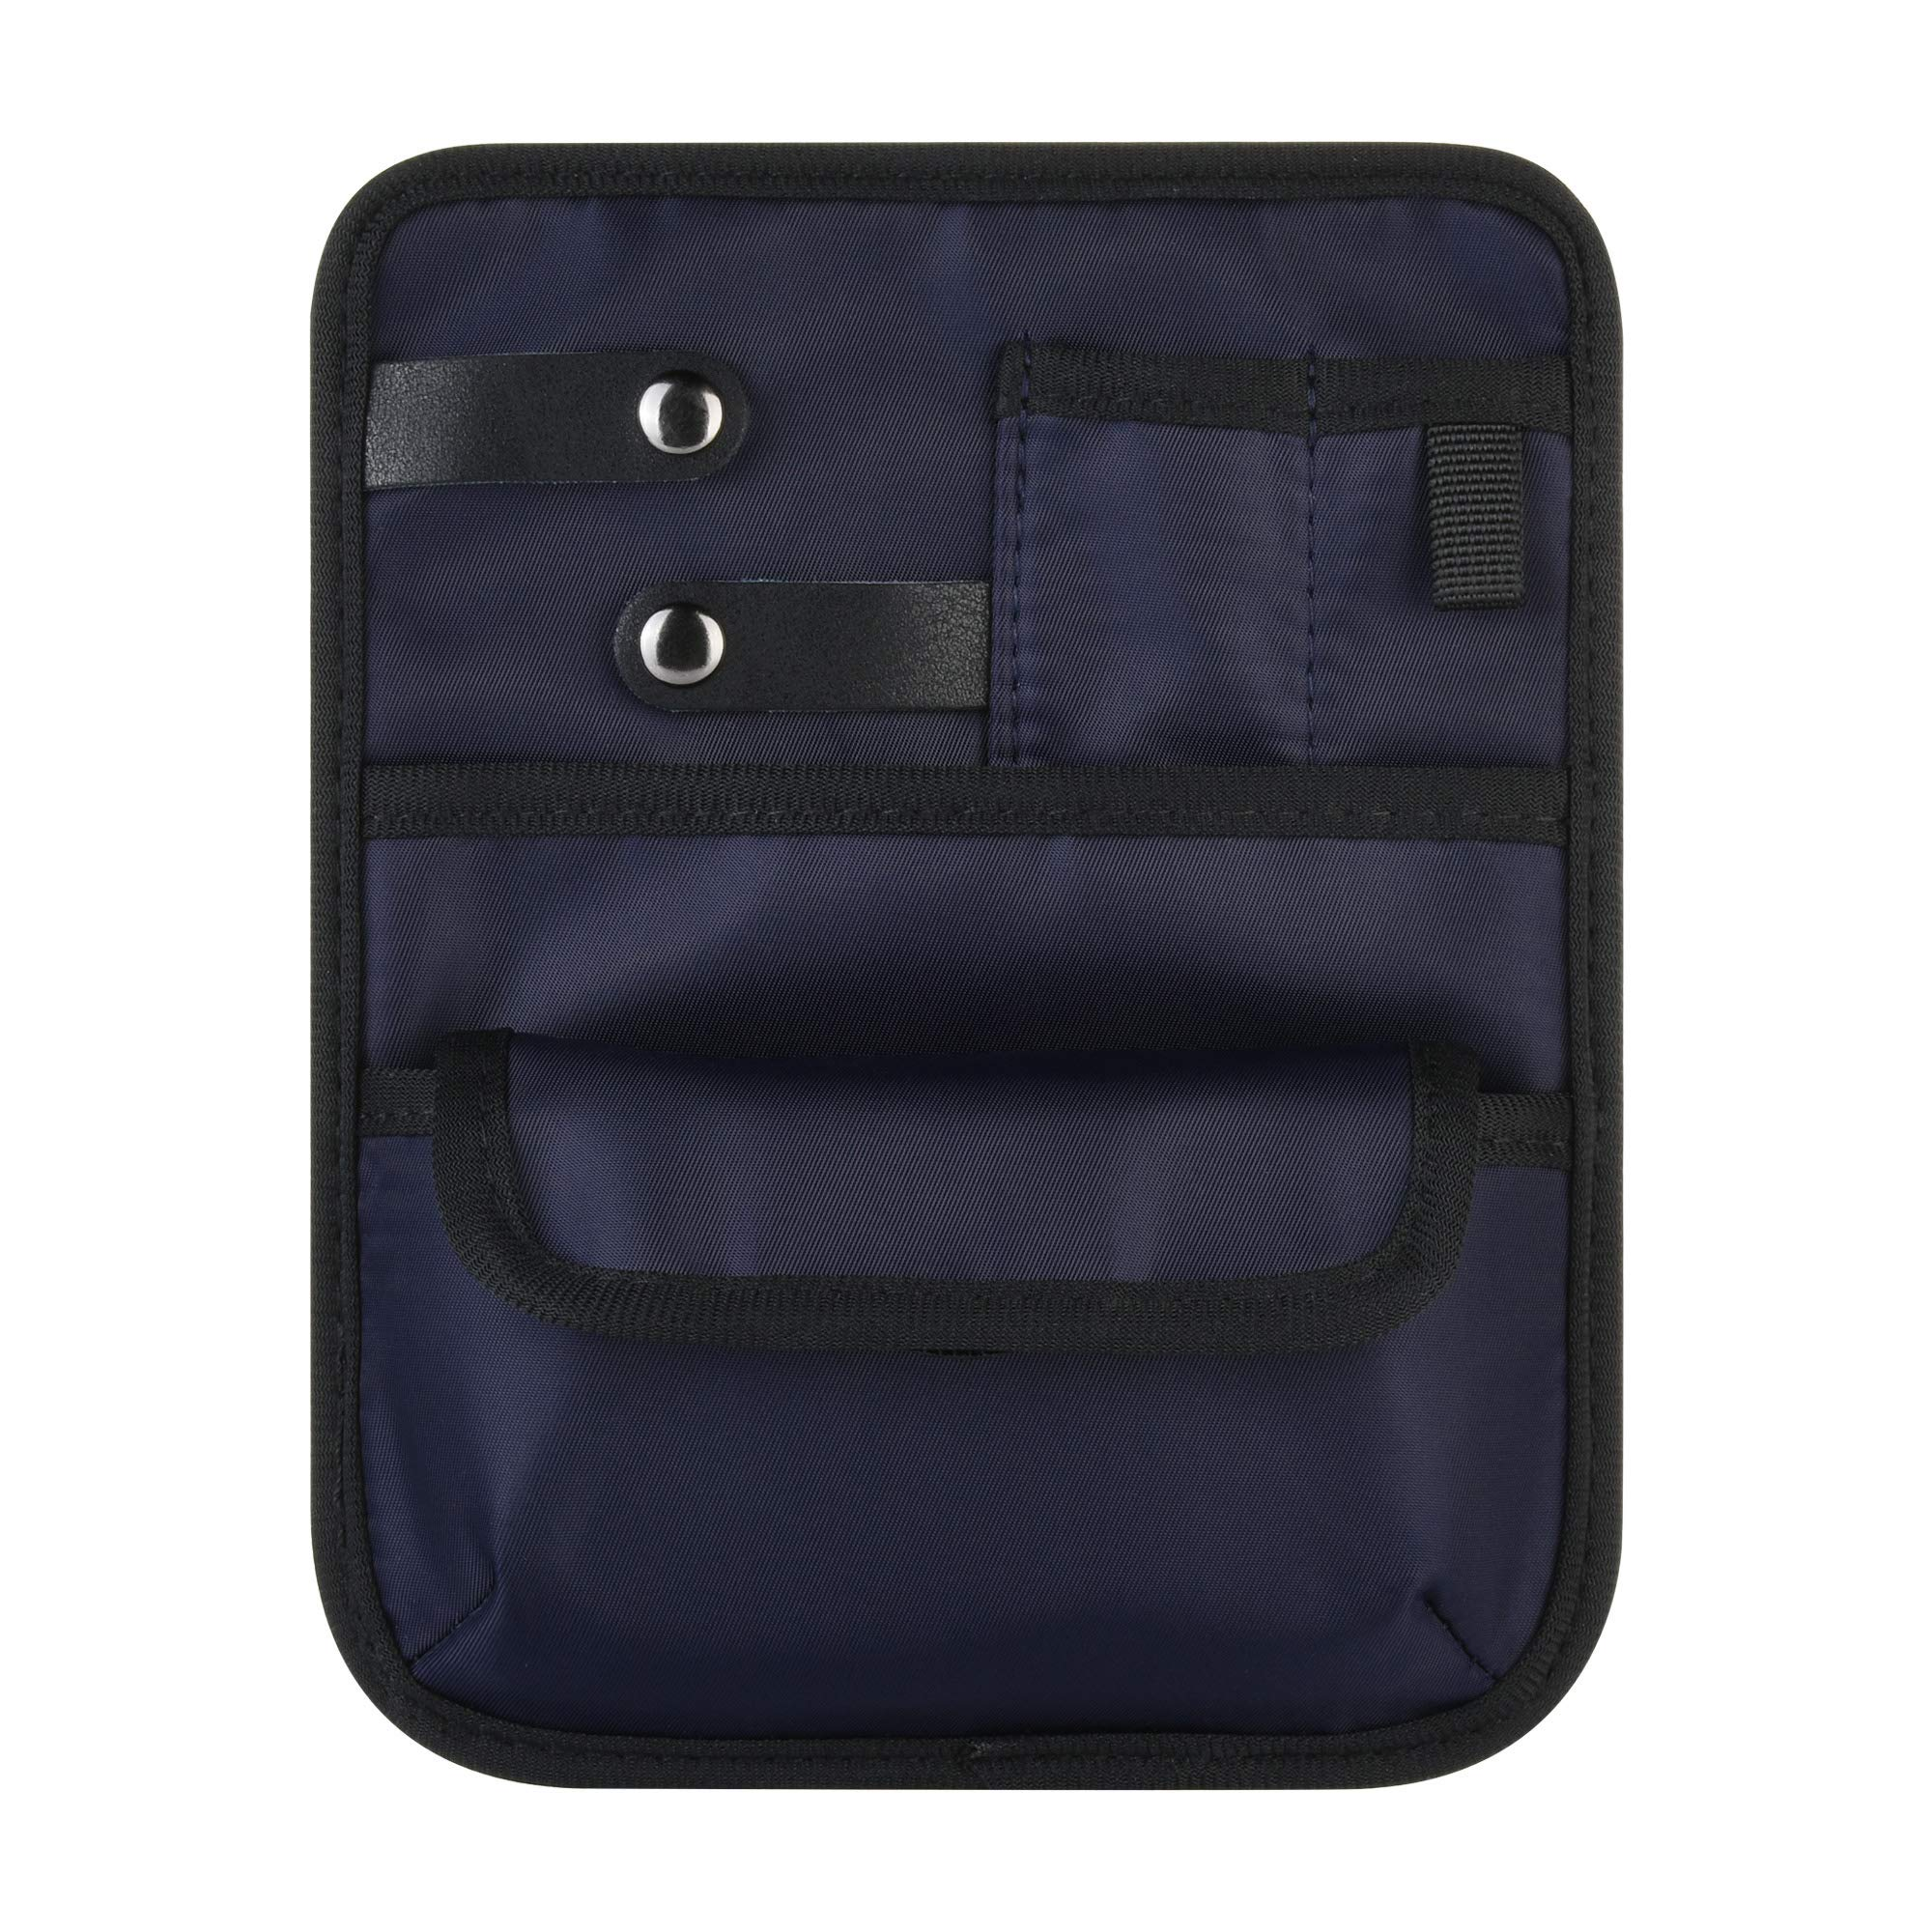 Beautyflier Nylon 4 Pockets Nurse Organizer Bag Pouch for Accessories Tool Case Medical Care Kit (CASE ONLY) (Dark Blue (6 Pocket))